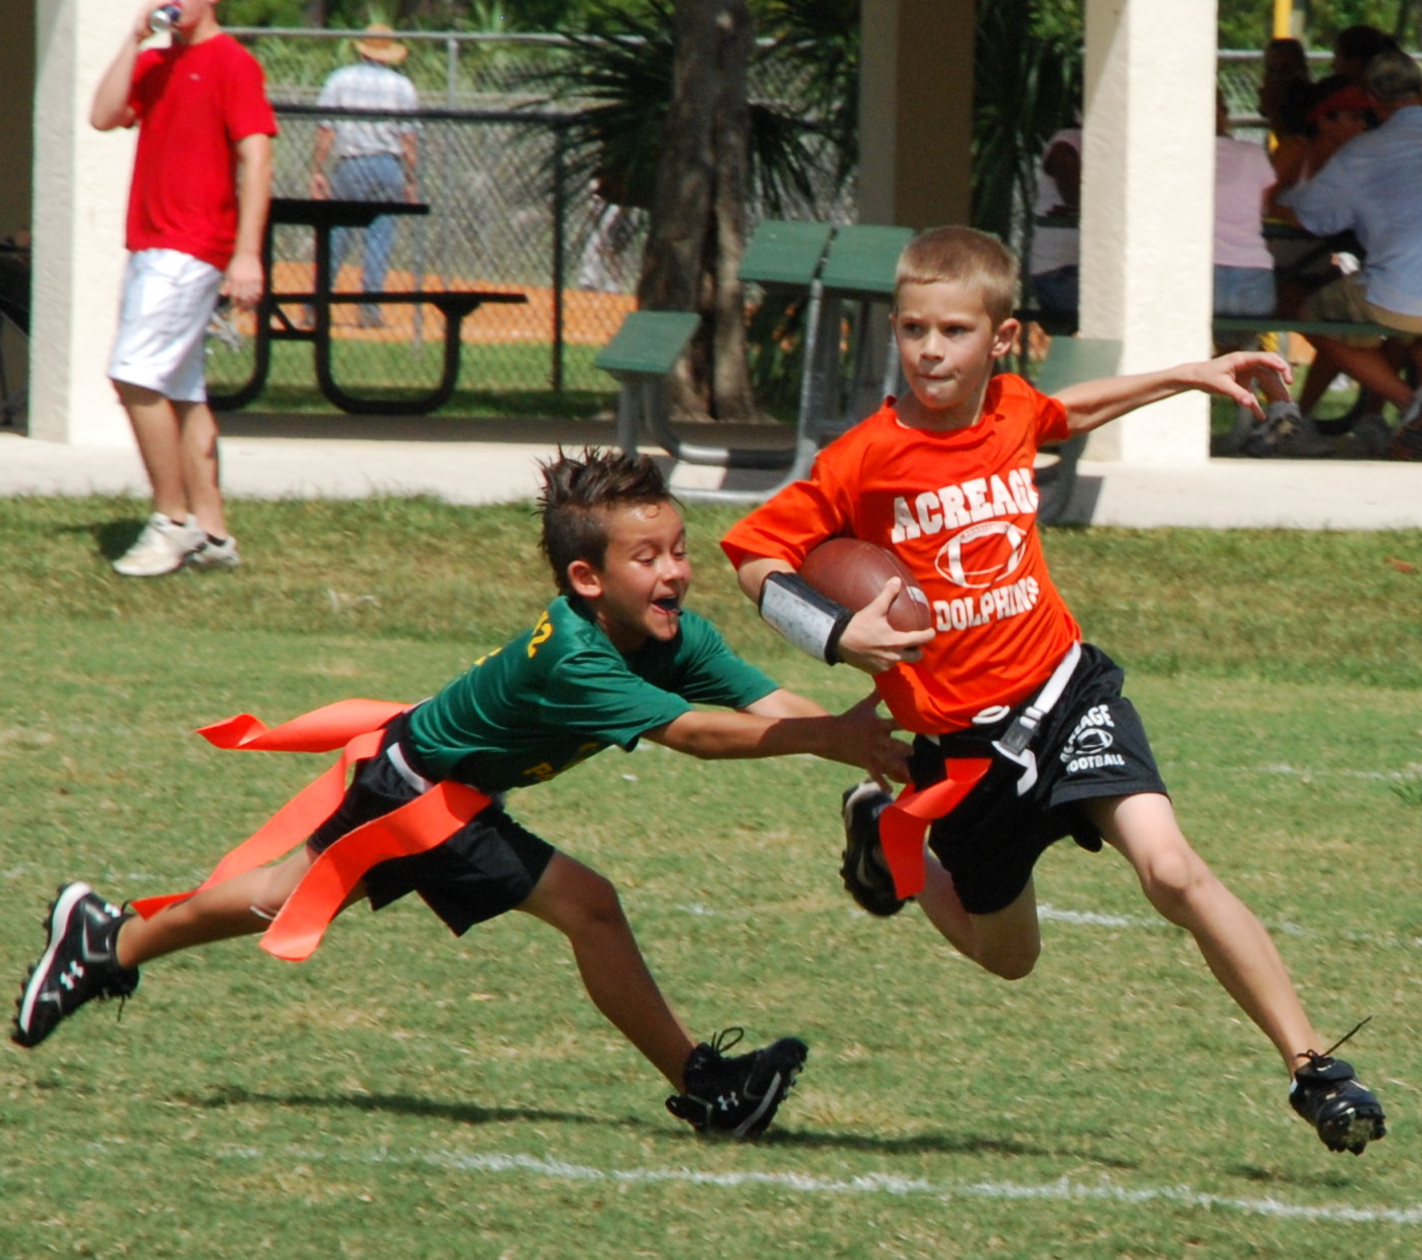 Volunteers Needed For Aquidneck Island Flag Football League